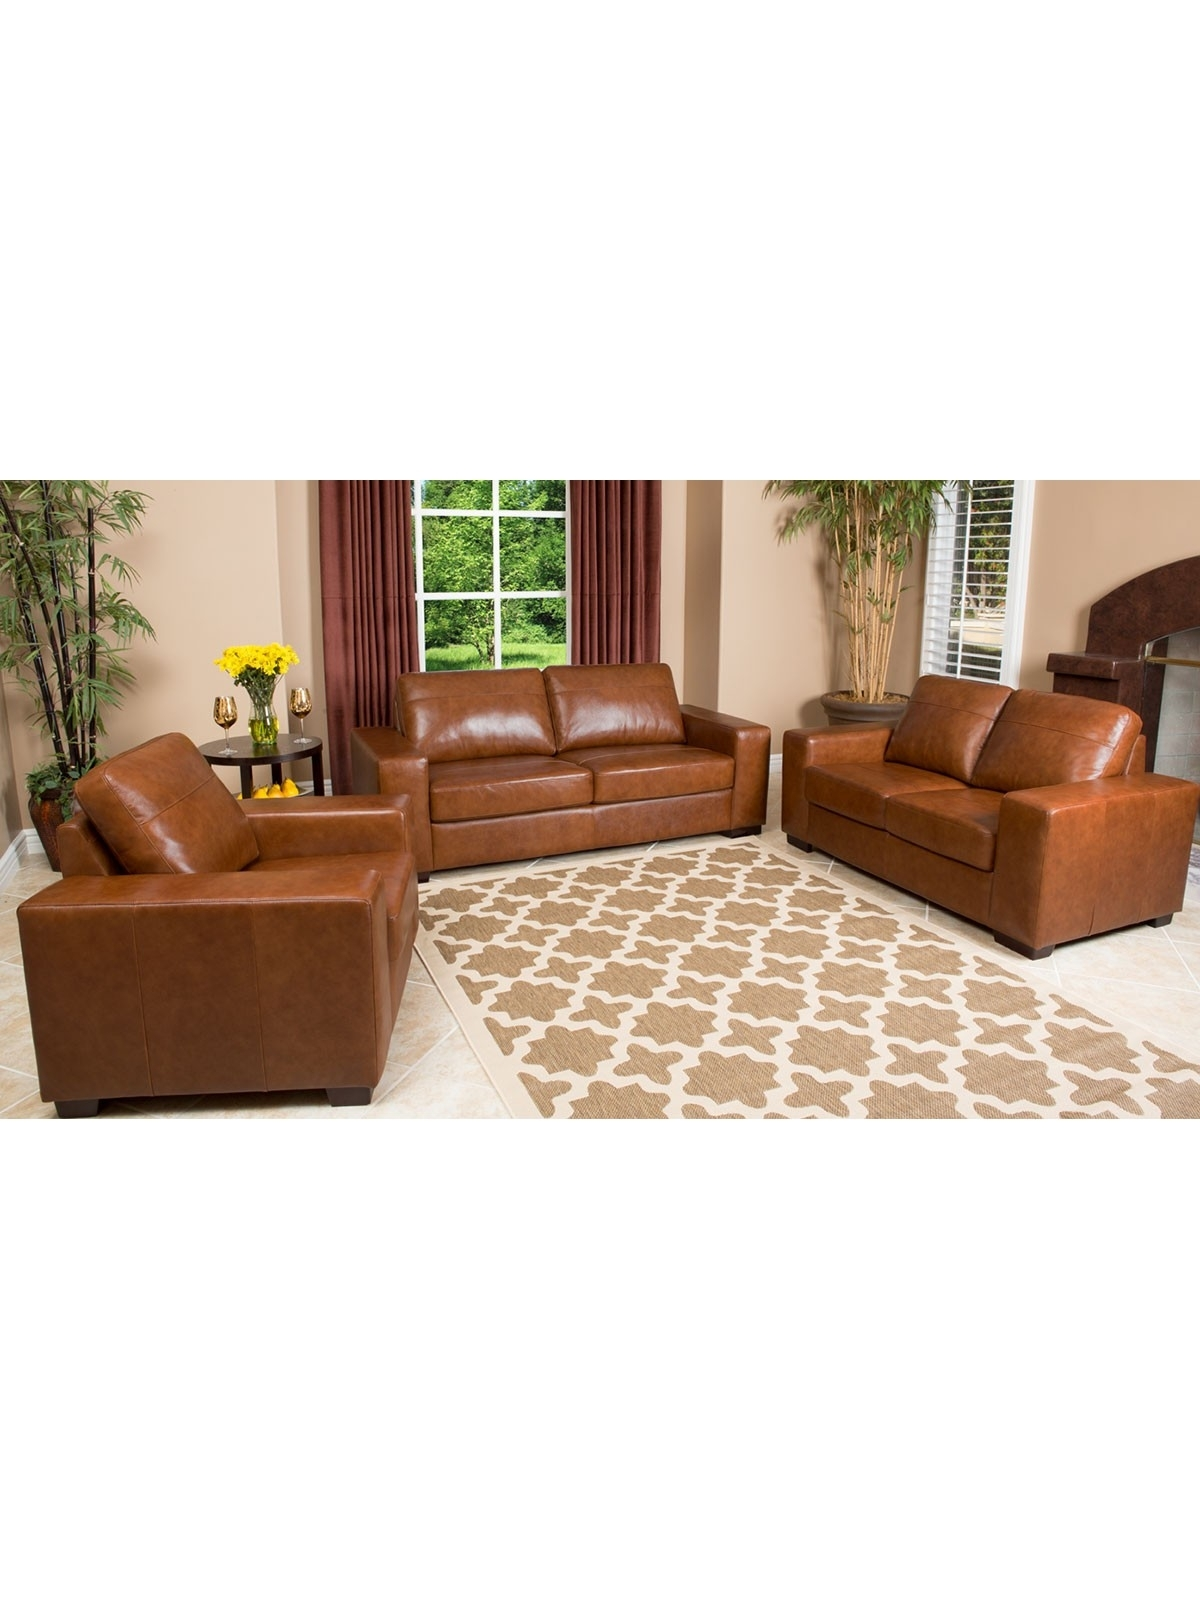 Camel Color Leather Sofa Sectional Couches Colored Coloured Within Camel Colored Sectional Sofas (View 6 of 10)